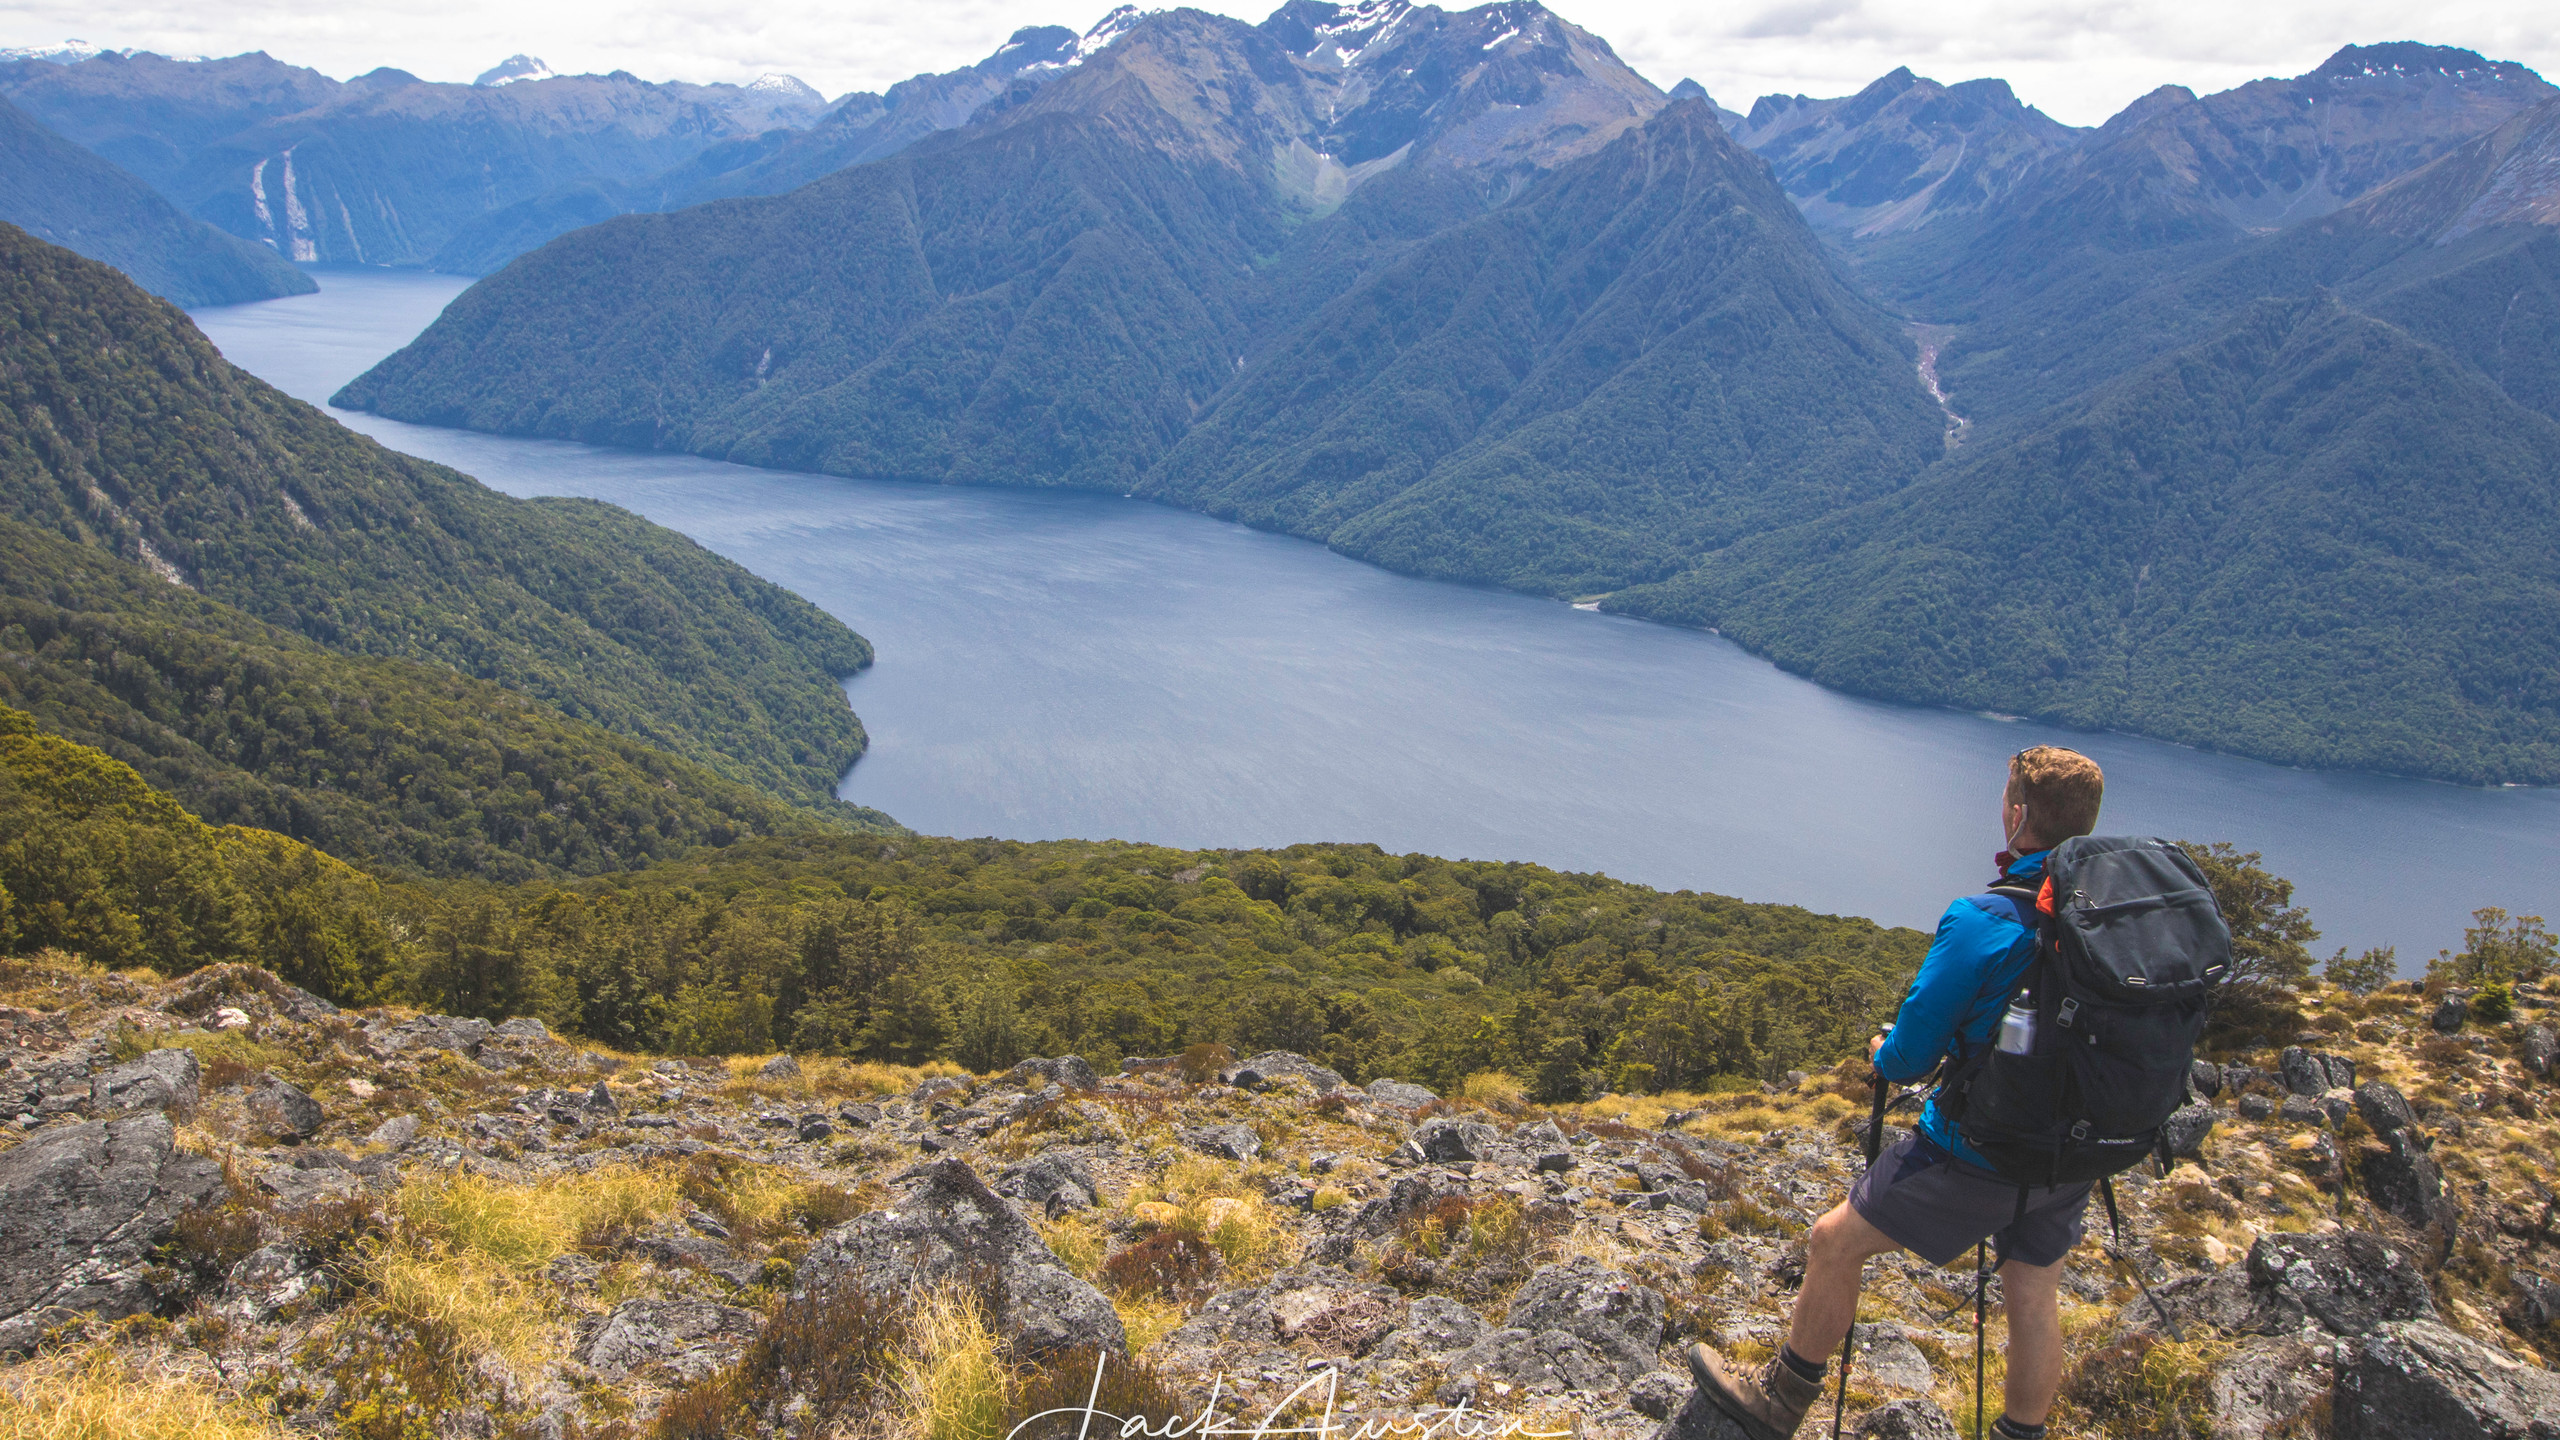 The view over the South fiords